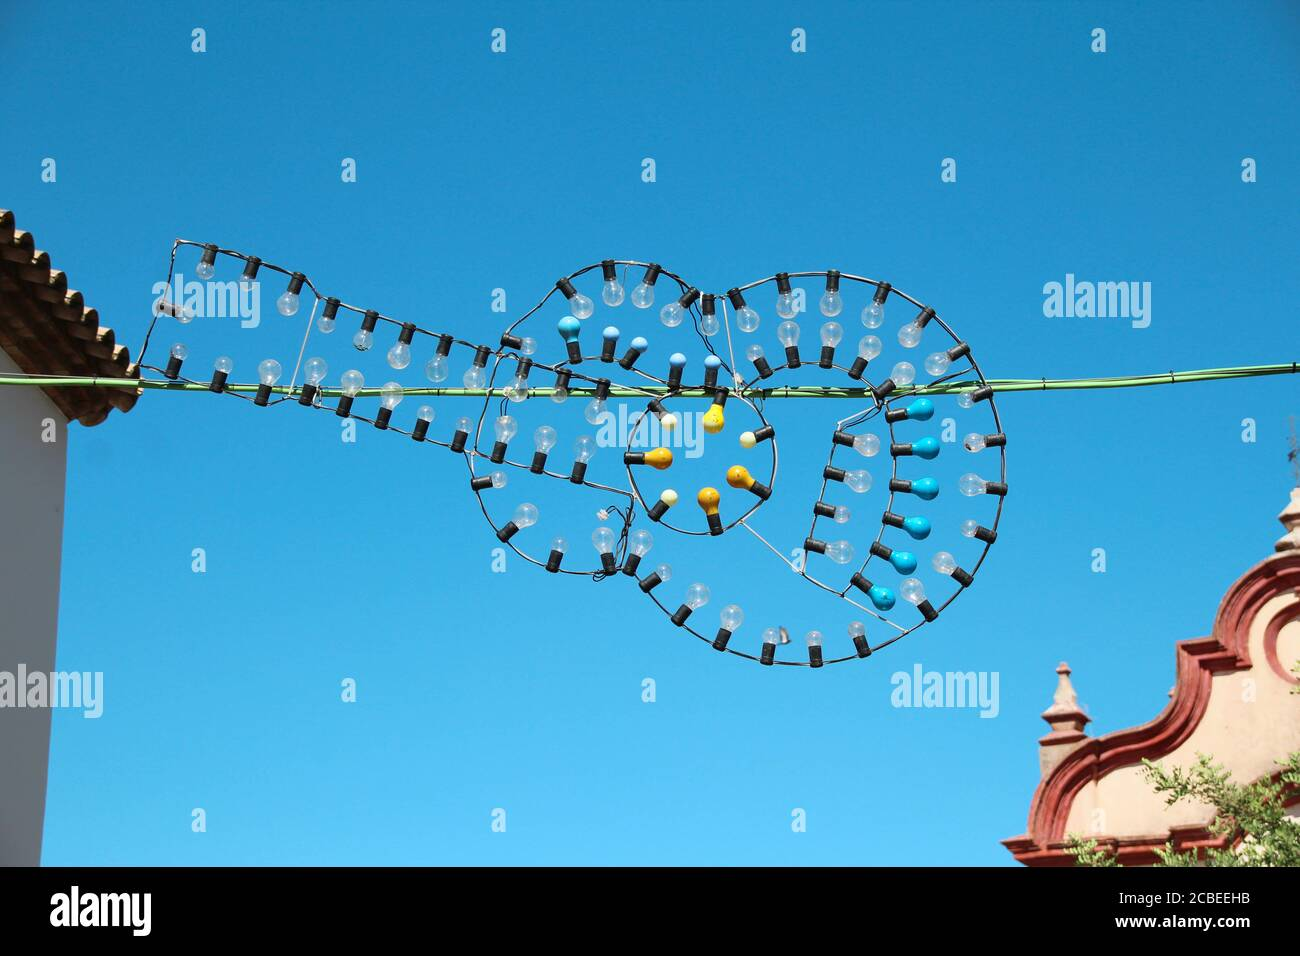 A Beautiful View Of Lights On A Fair As A Guitar Against The Blue Sky Stock Photo Alamy